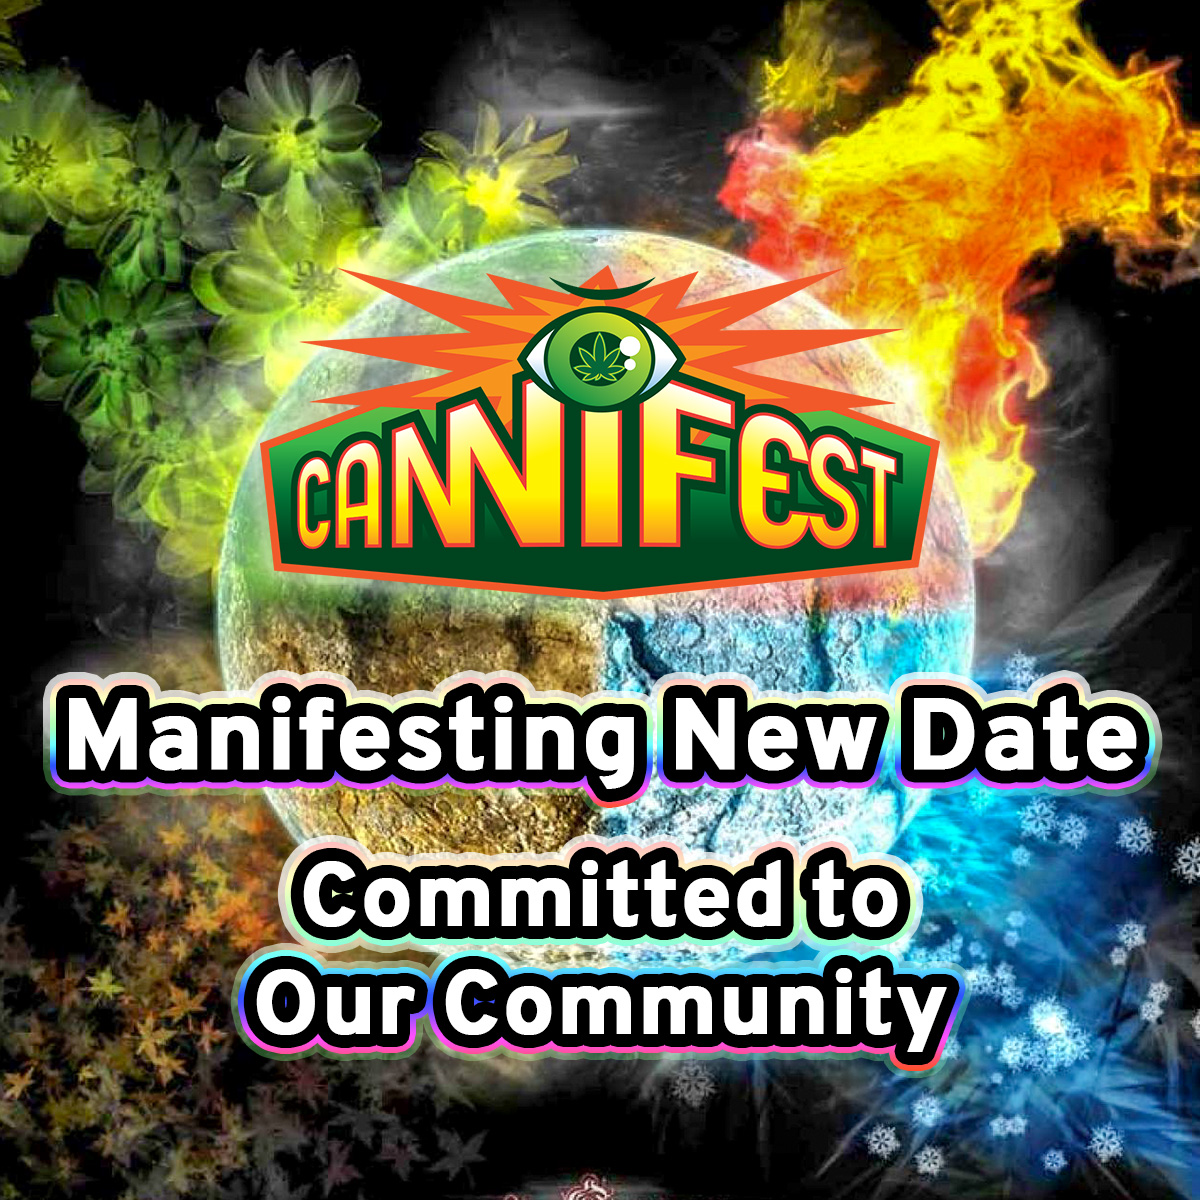 Manifesting a New Date